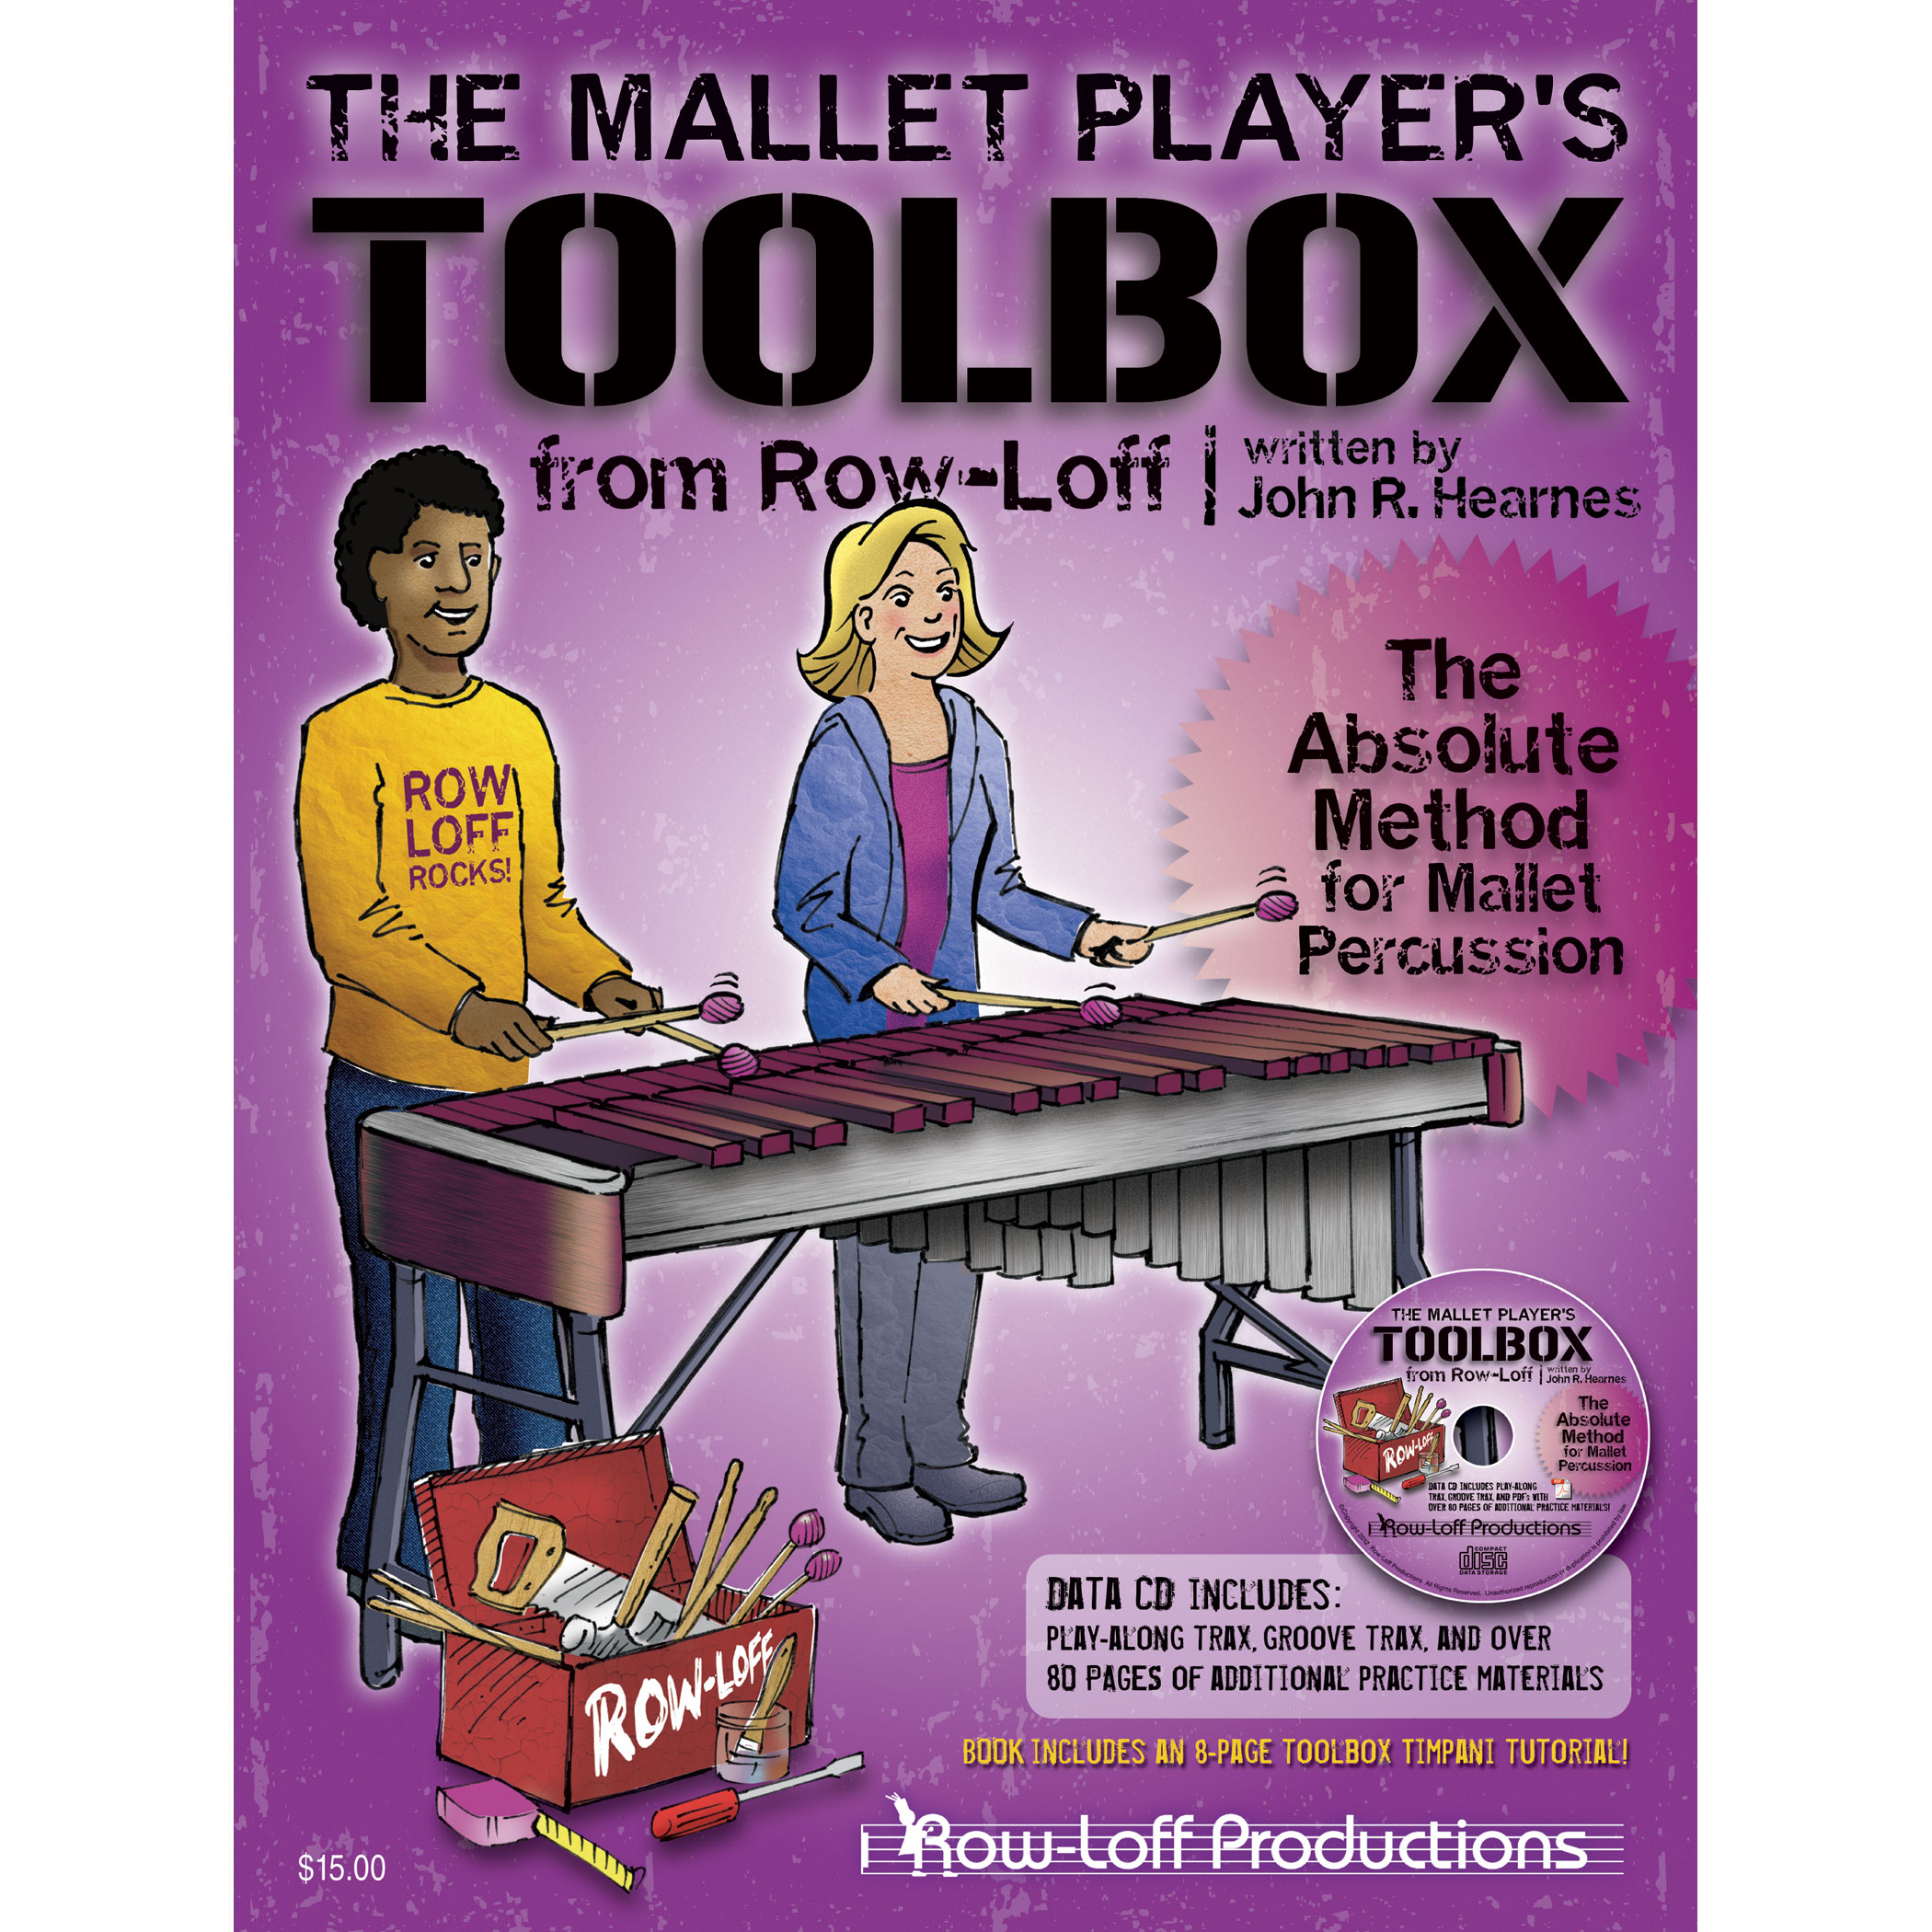 The Mallet Player